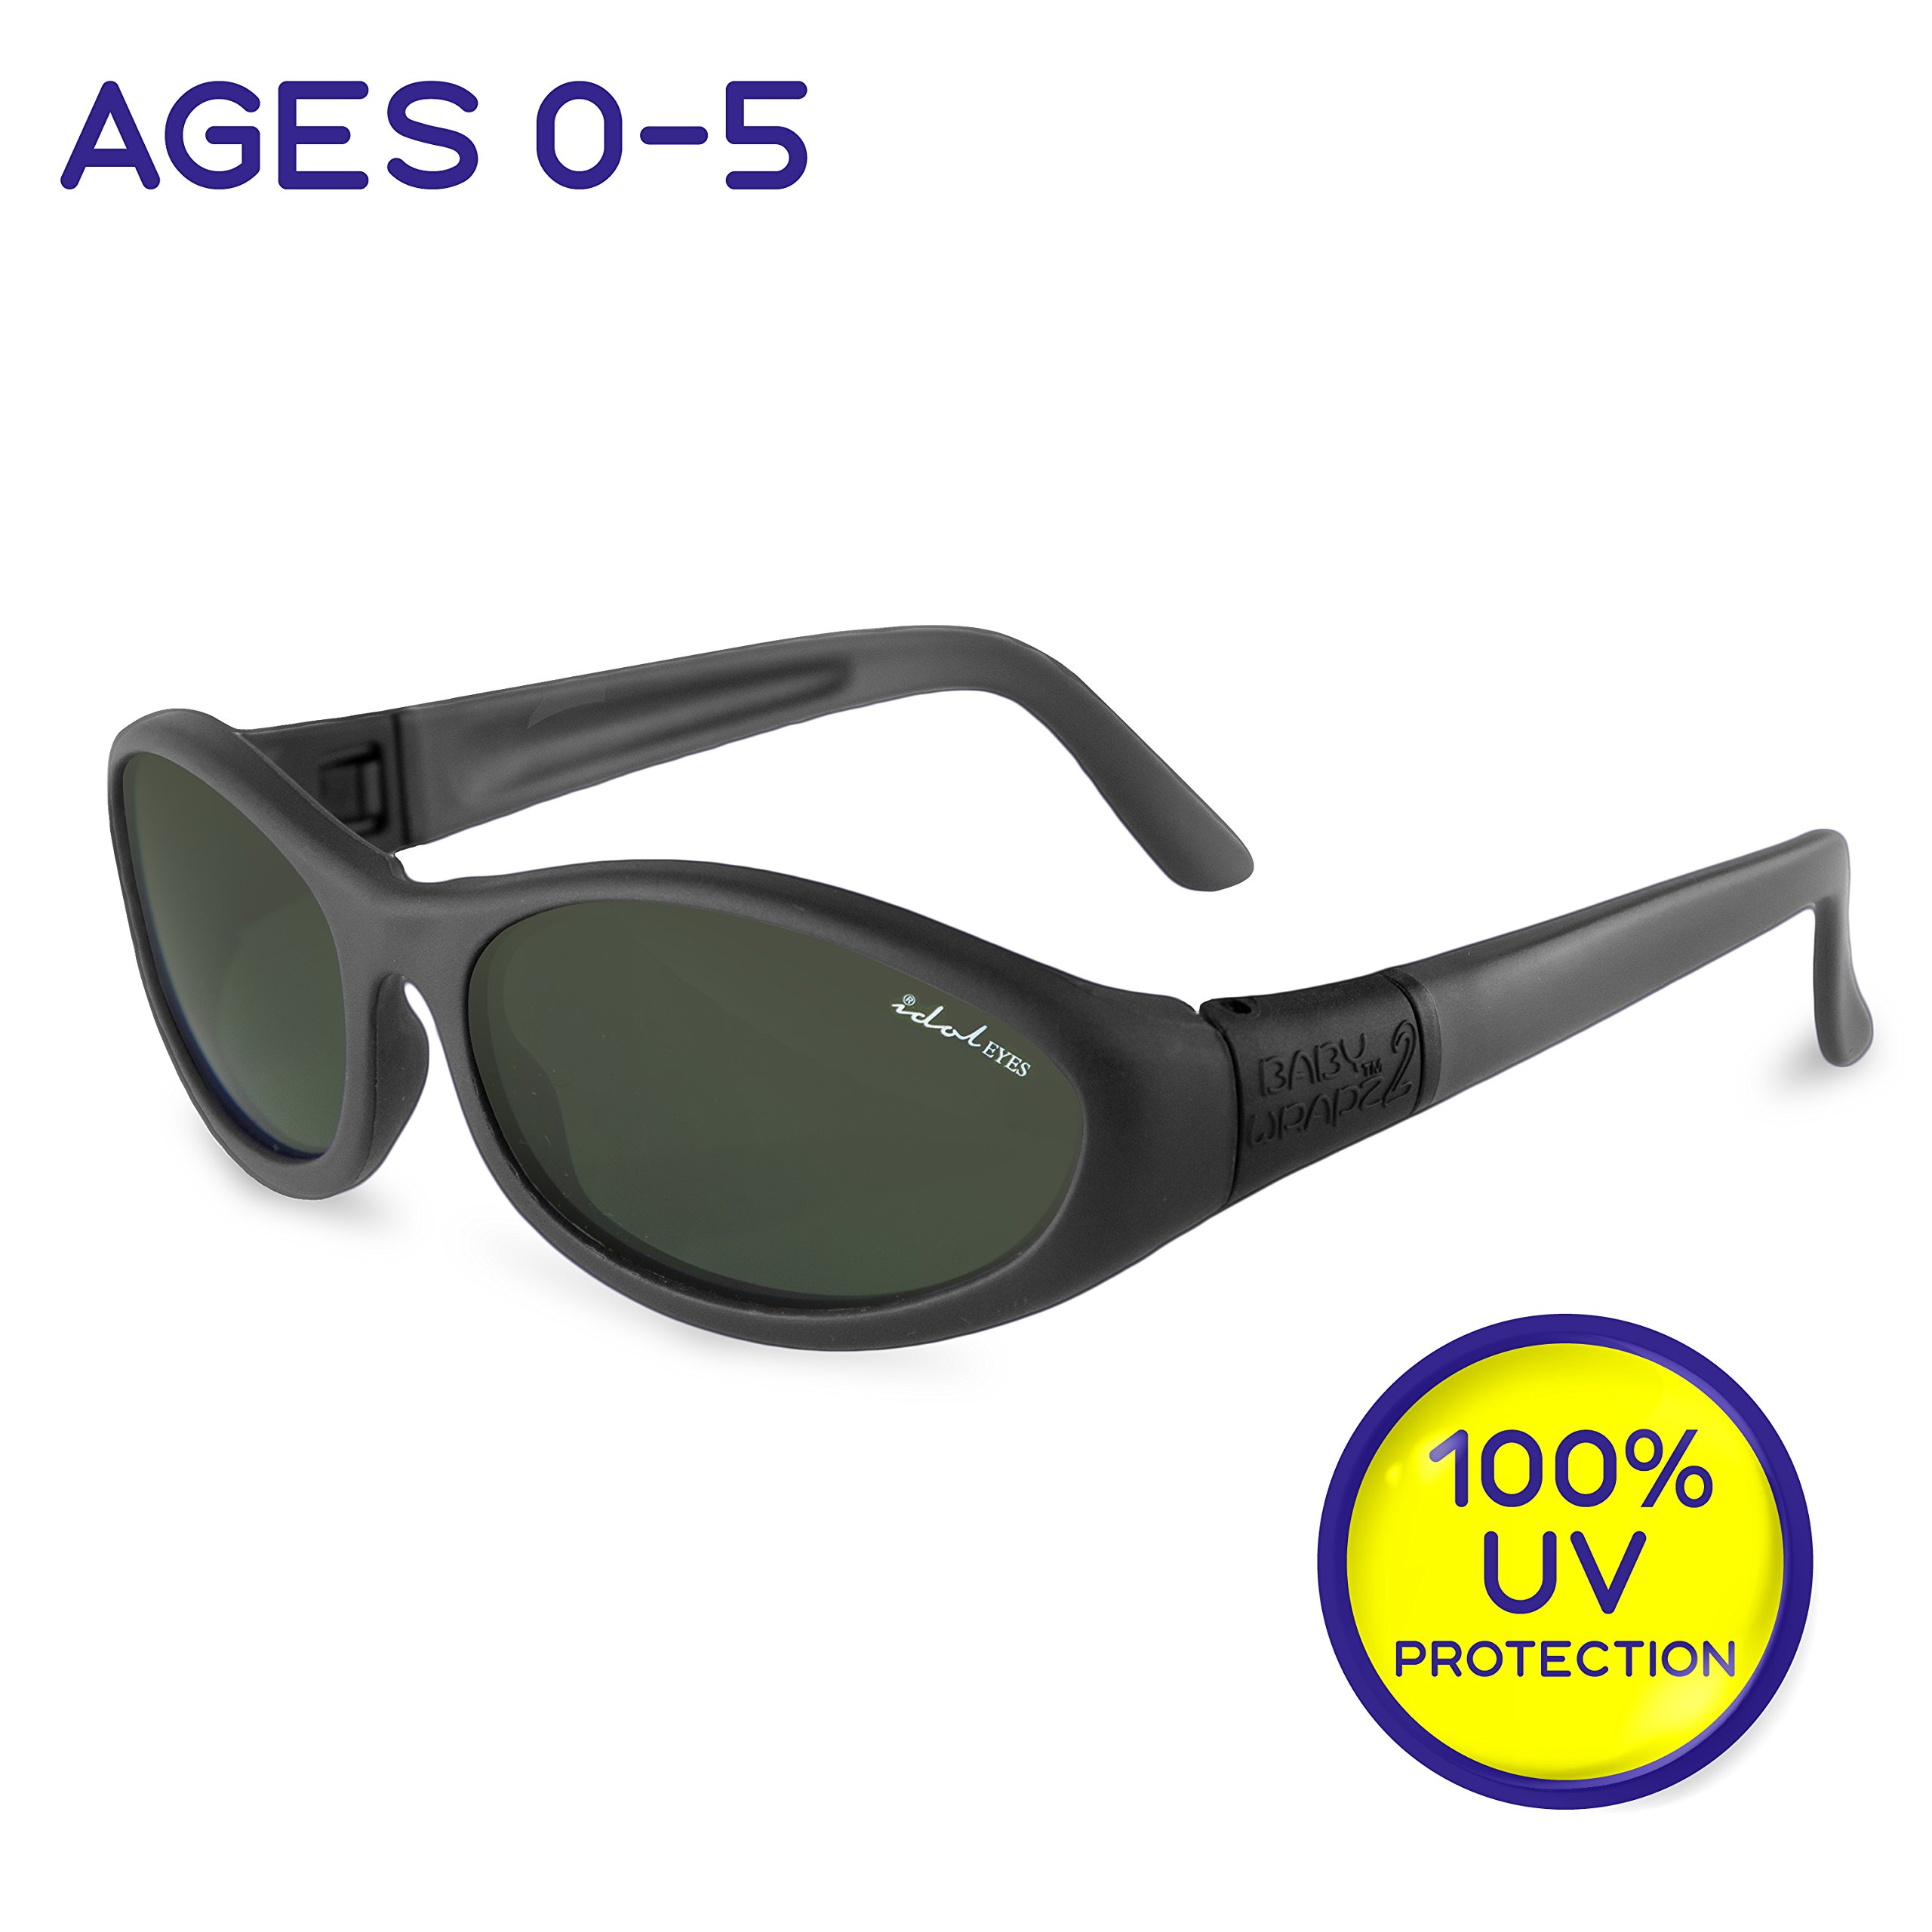 "Idol Eyes Kids Sunglasses for Kids - ""Baby Wrapz 2"" 100% UV Protection Baby Sunglasses with Strap and Temples + Extra Baby Sunglasses Strap for Ages 0-5 (Black) by Livin' Well"